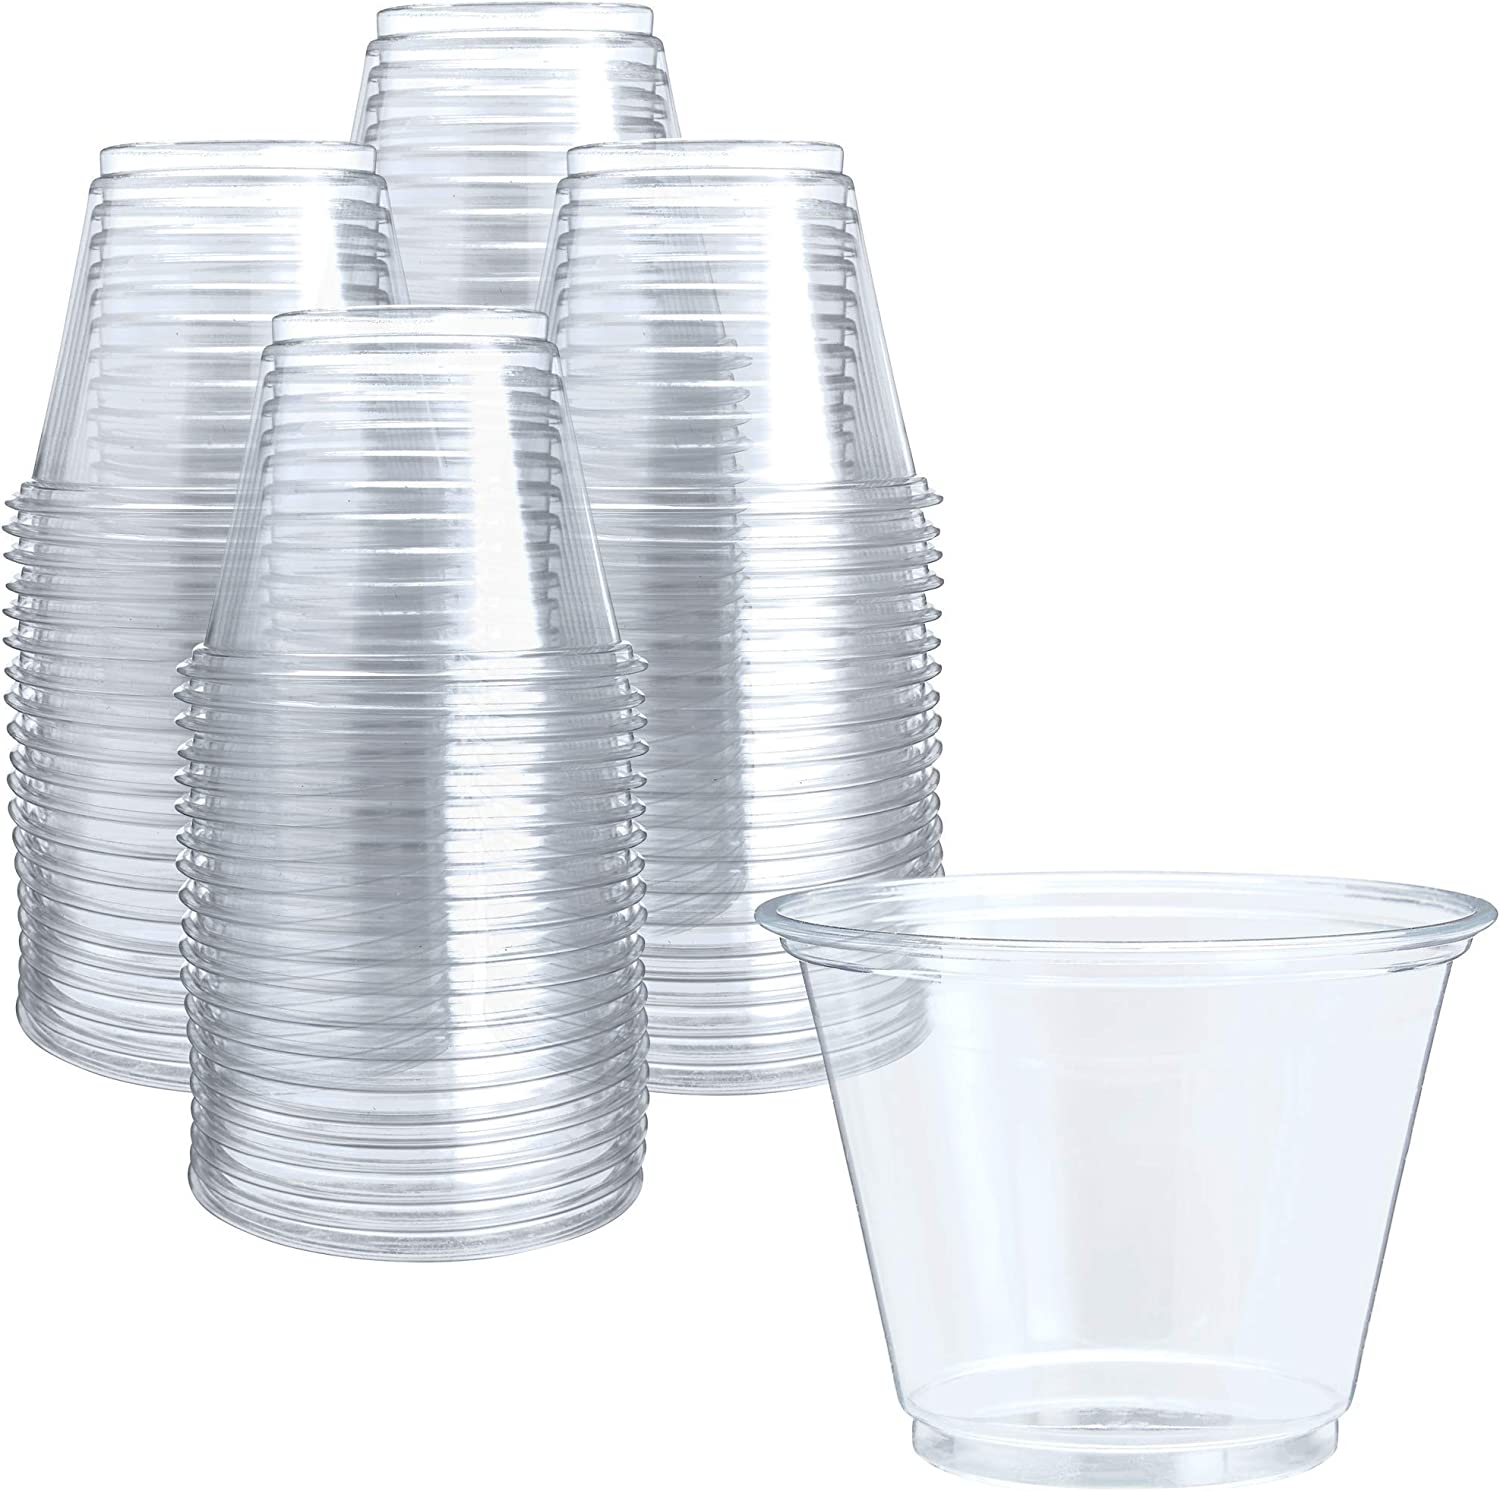 250 Clear Plastic Cups 9 Oz Plastic Cups Clear Disposable Cups Pet Cups Clear Plastic Party Cups Crystal Clear Plastic Cups Kitchen Dining